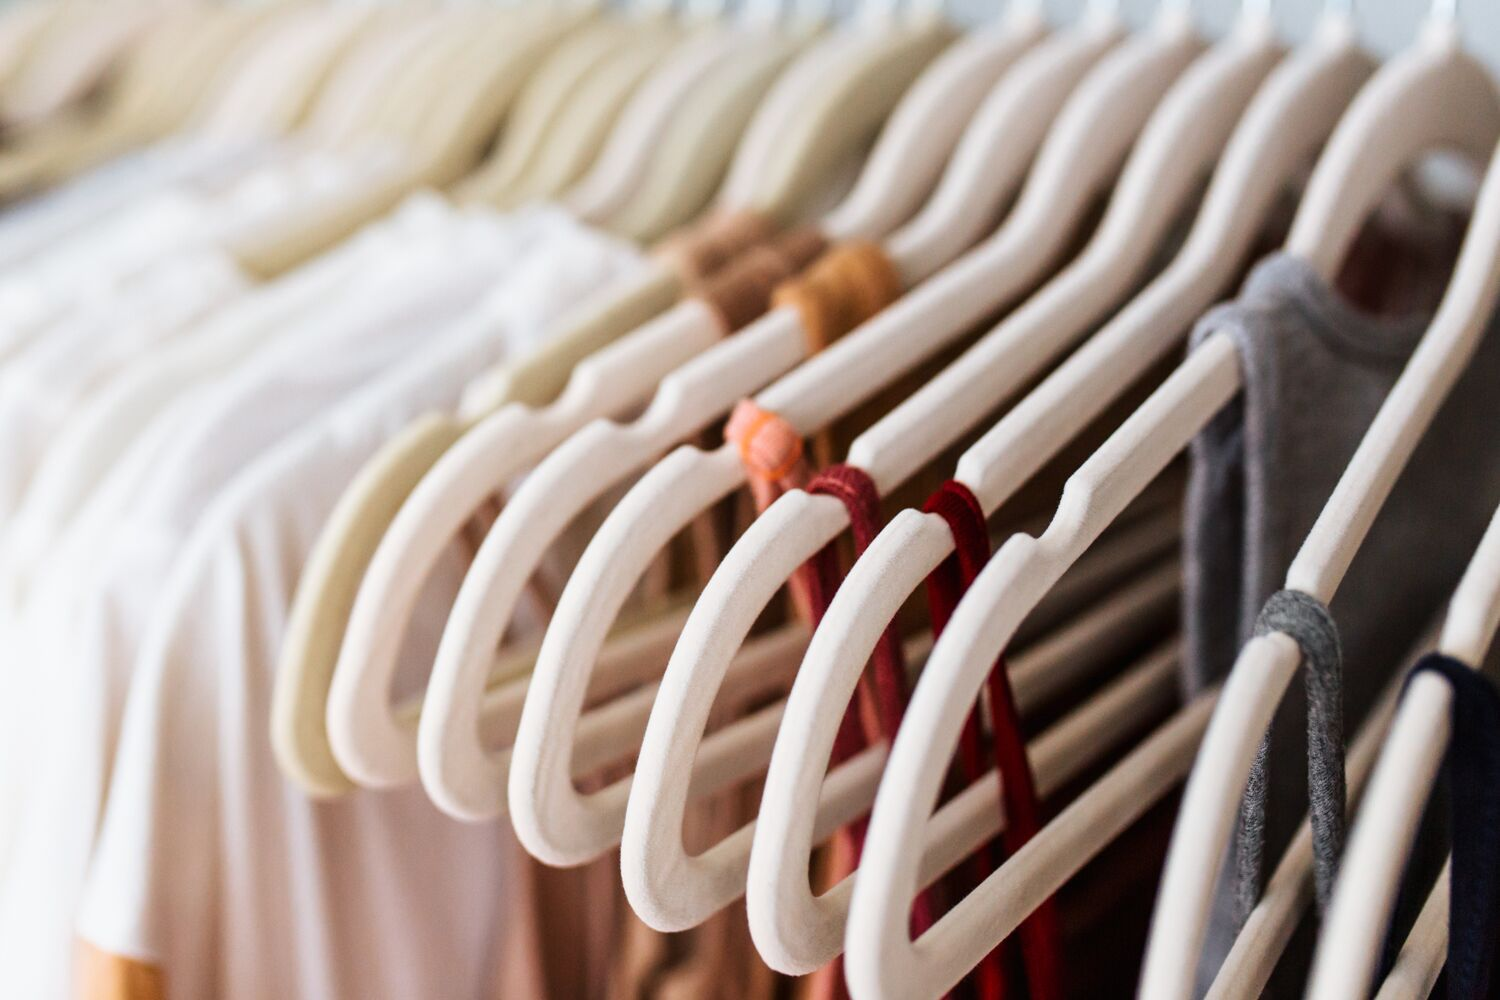 slim hangers allow for more space